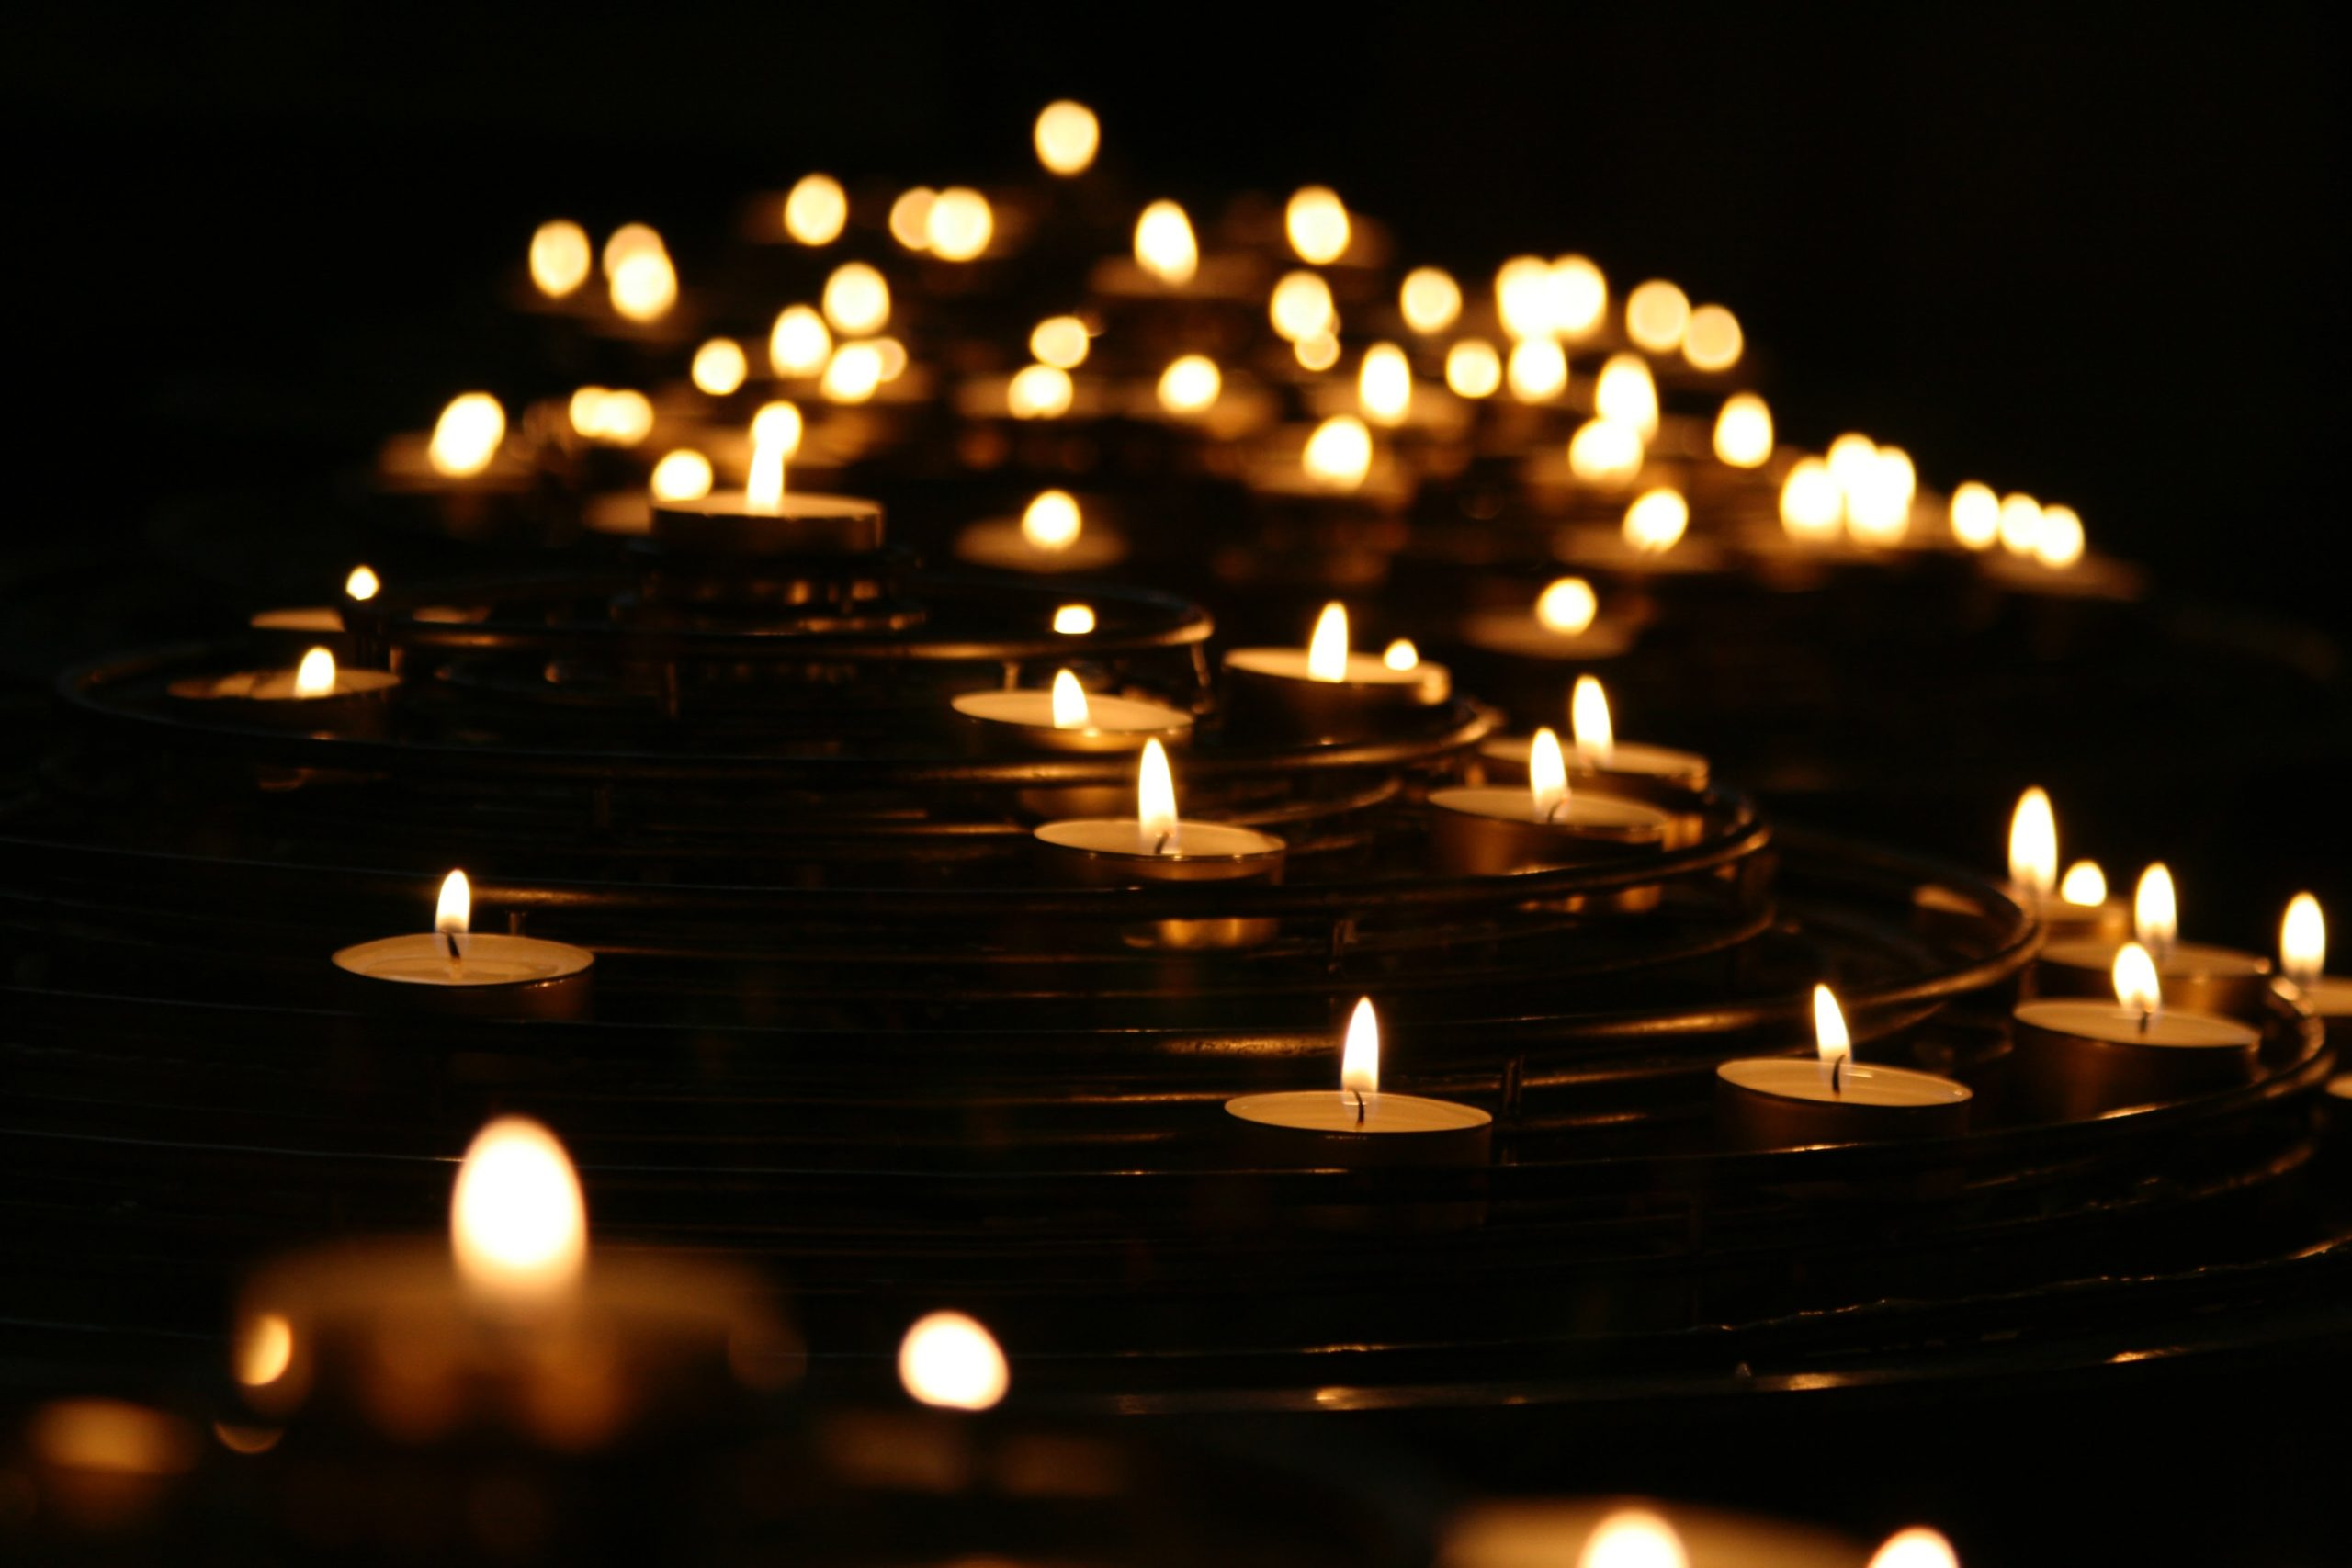 lit candles grief support Endless Journey Hospice Omaha Nebraska endless support